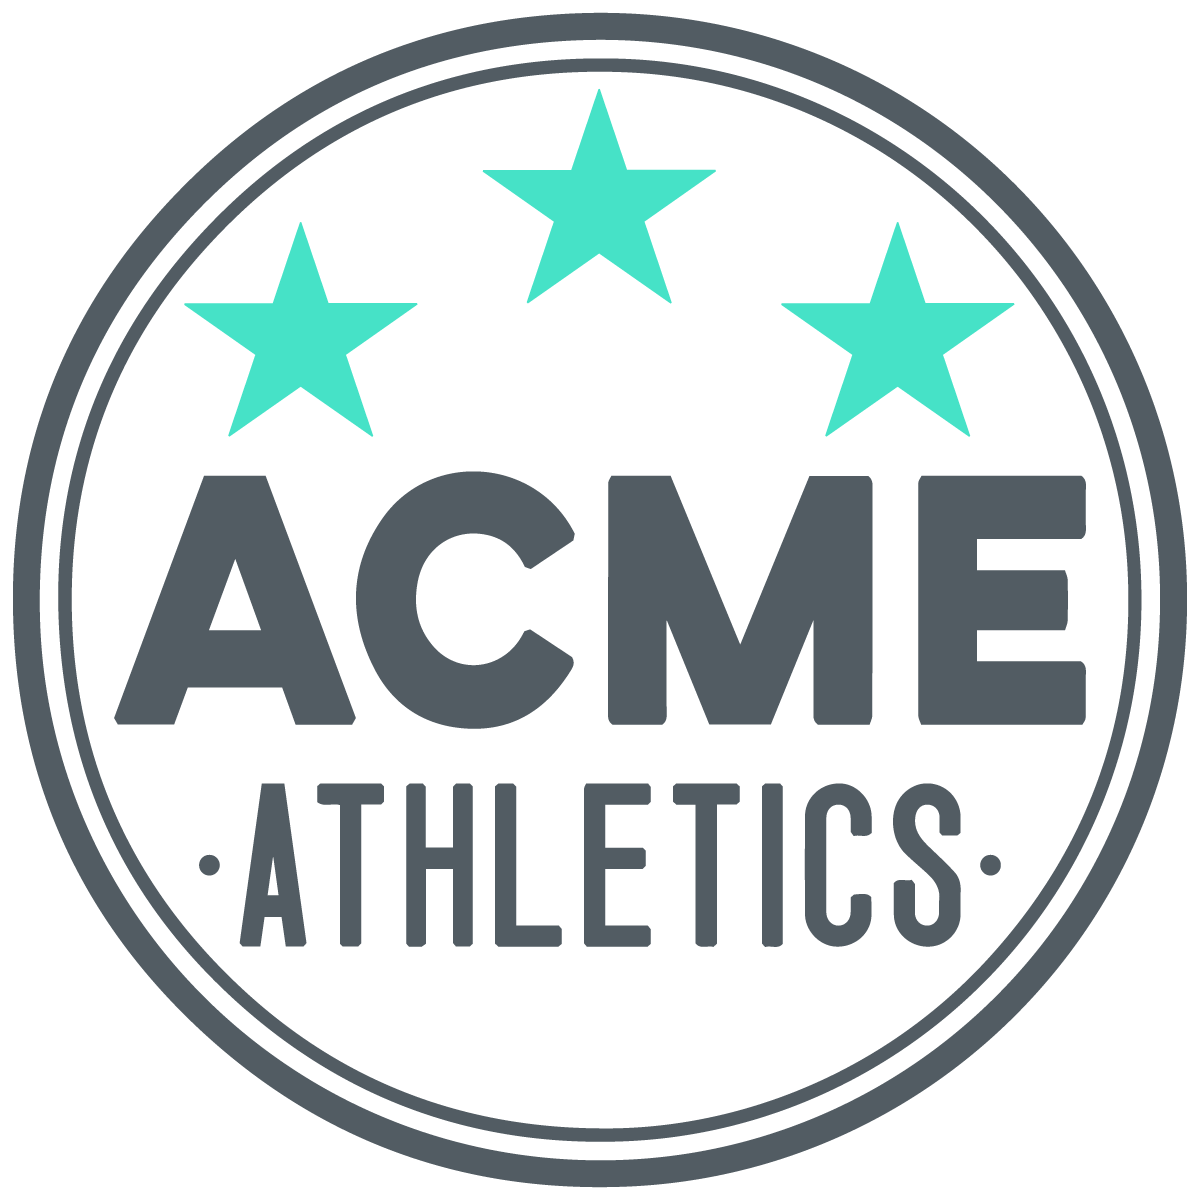 ACME Athletics